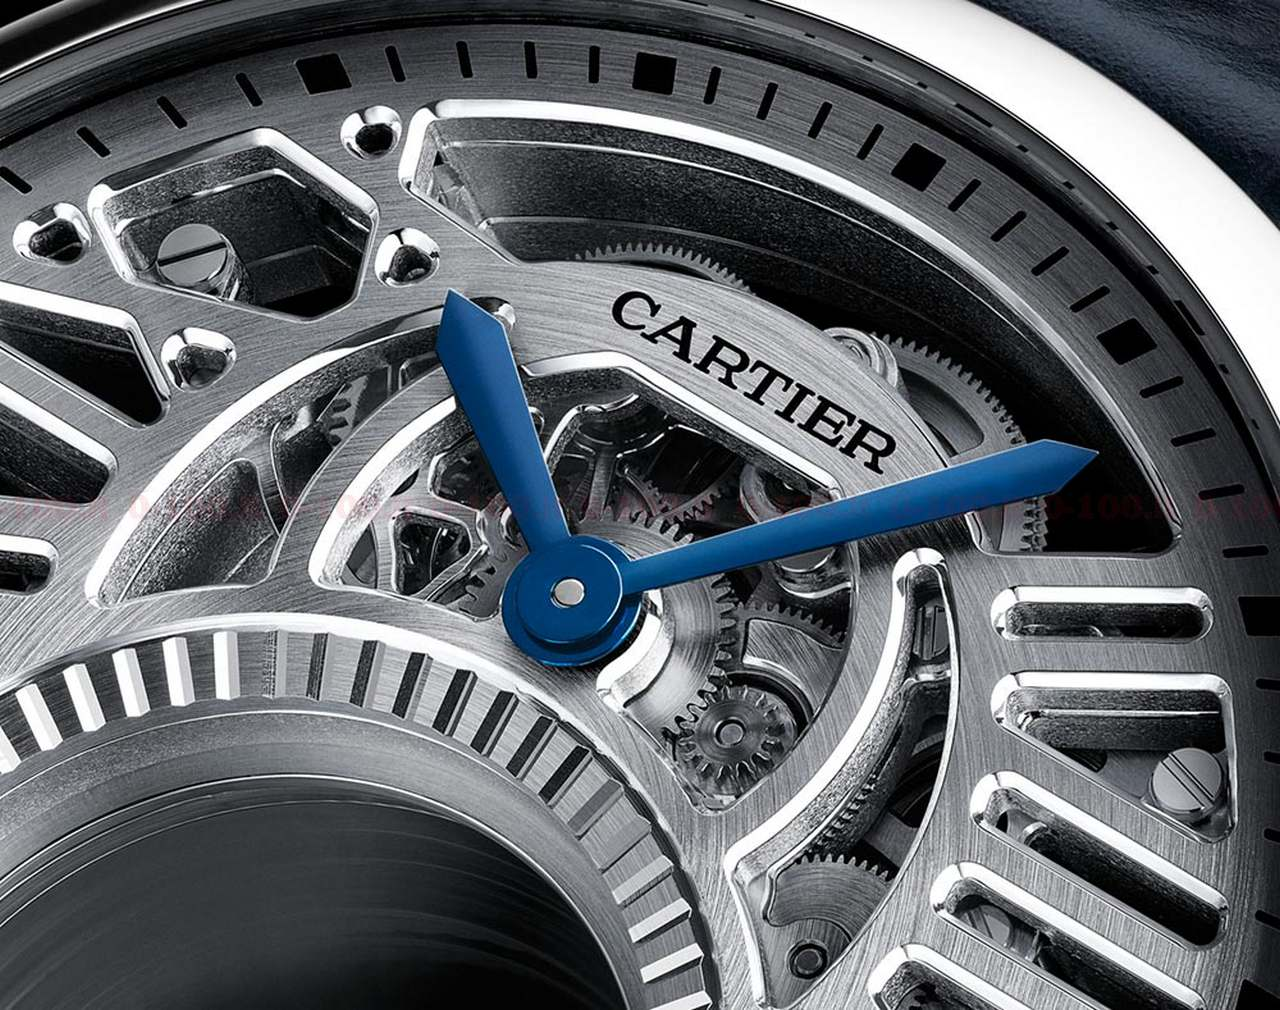 Anteprima SIHH 2018_ Rotonde de Cartier Skeleton Mysterious Double Tourbillon Limited Edition_price_0-1004